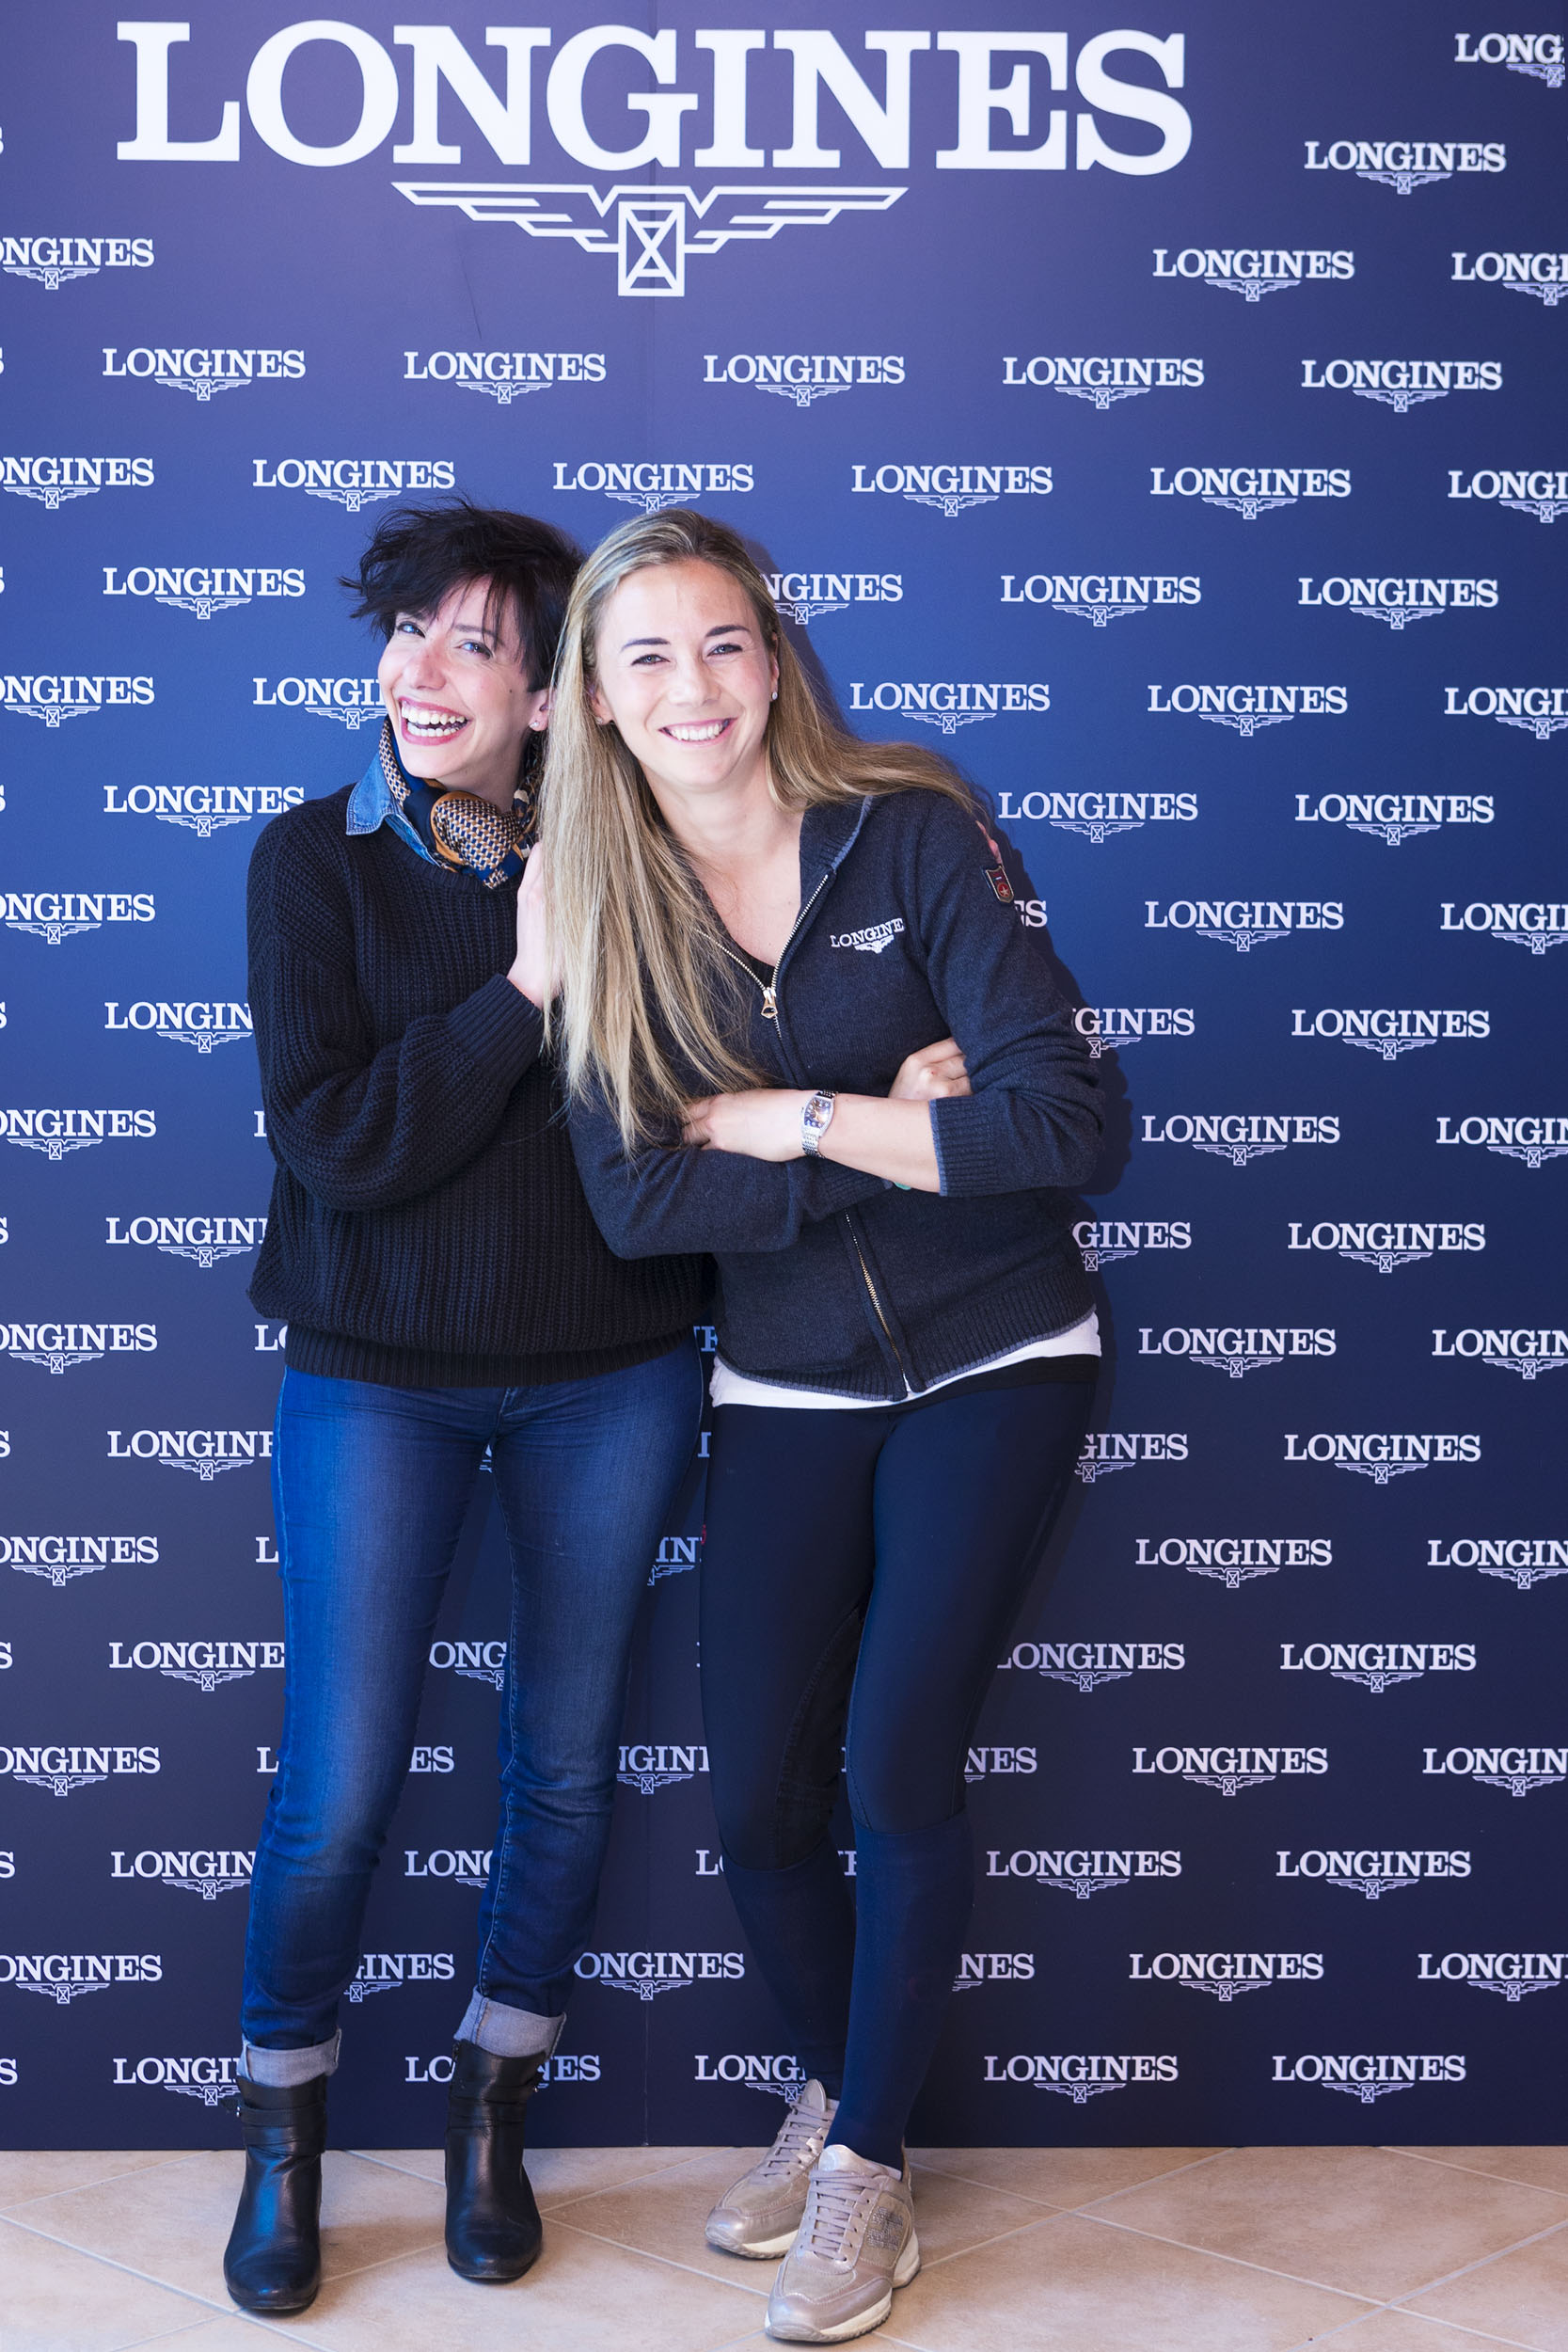 015_Longines & Jane_Richard@Vinovo_M0X0079